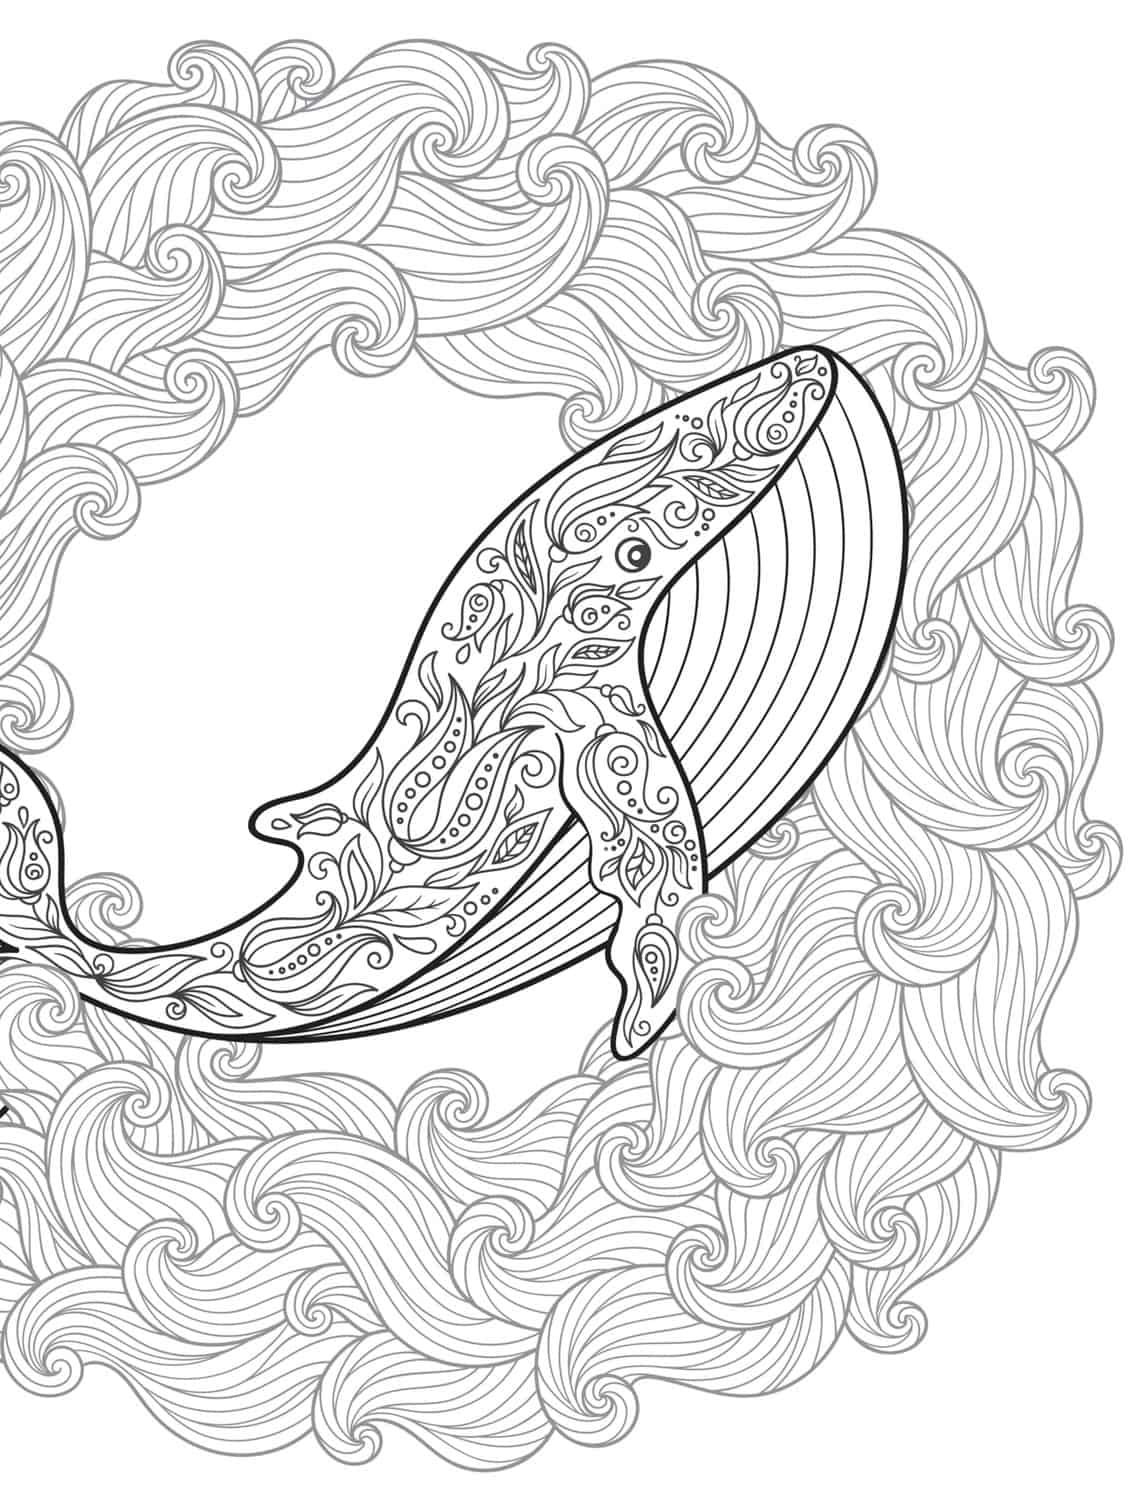 Free whimsical coloring pages for adults - Whale Adult Coloring Page For Free Printing